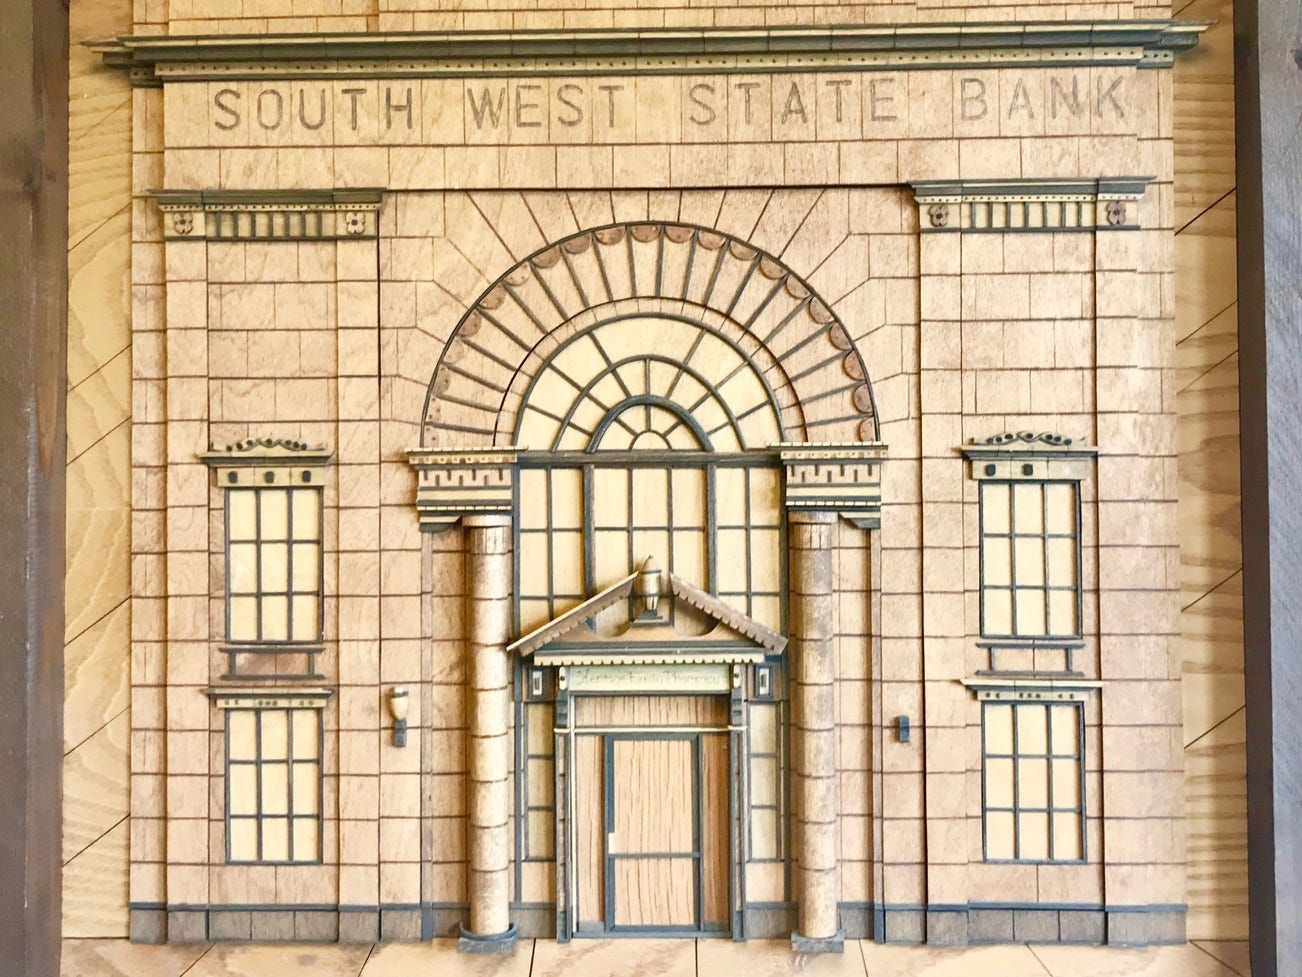 The historic building was once a bank. This mural showcases what the original entrance looked like.